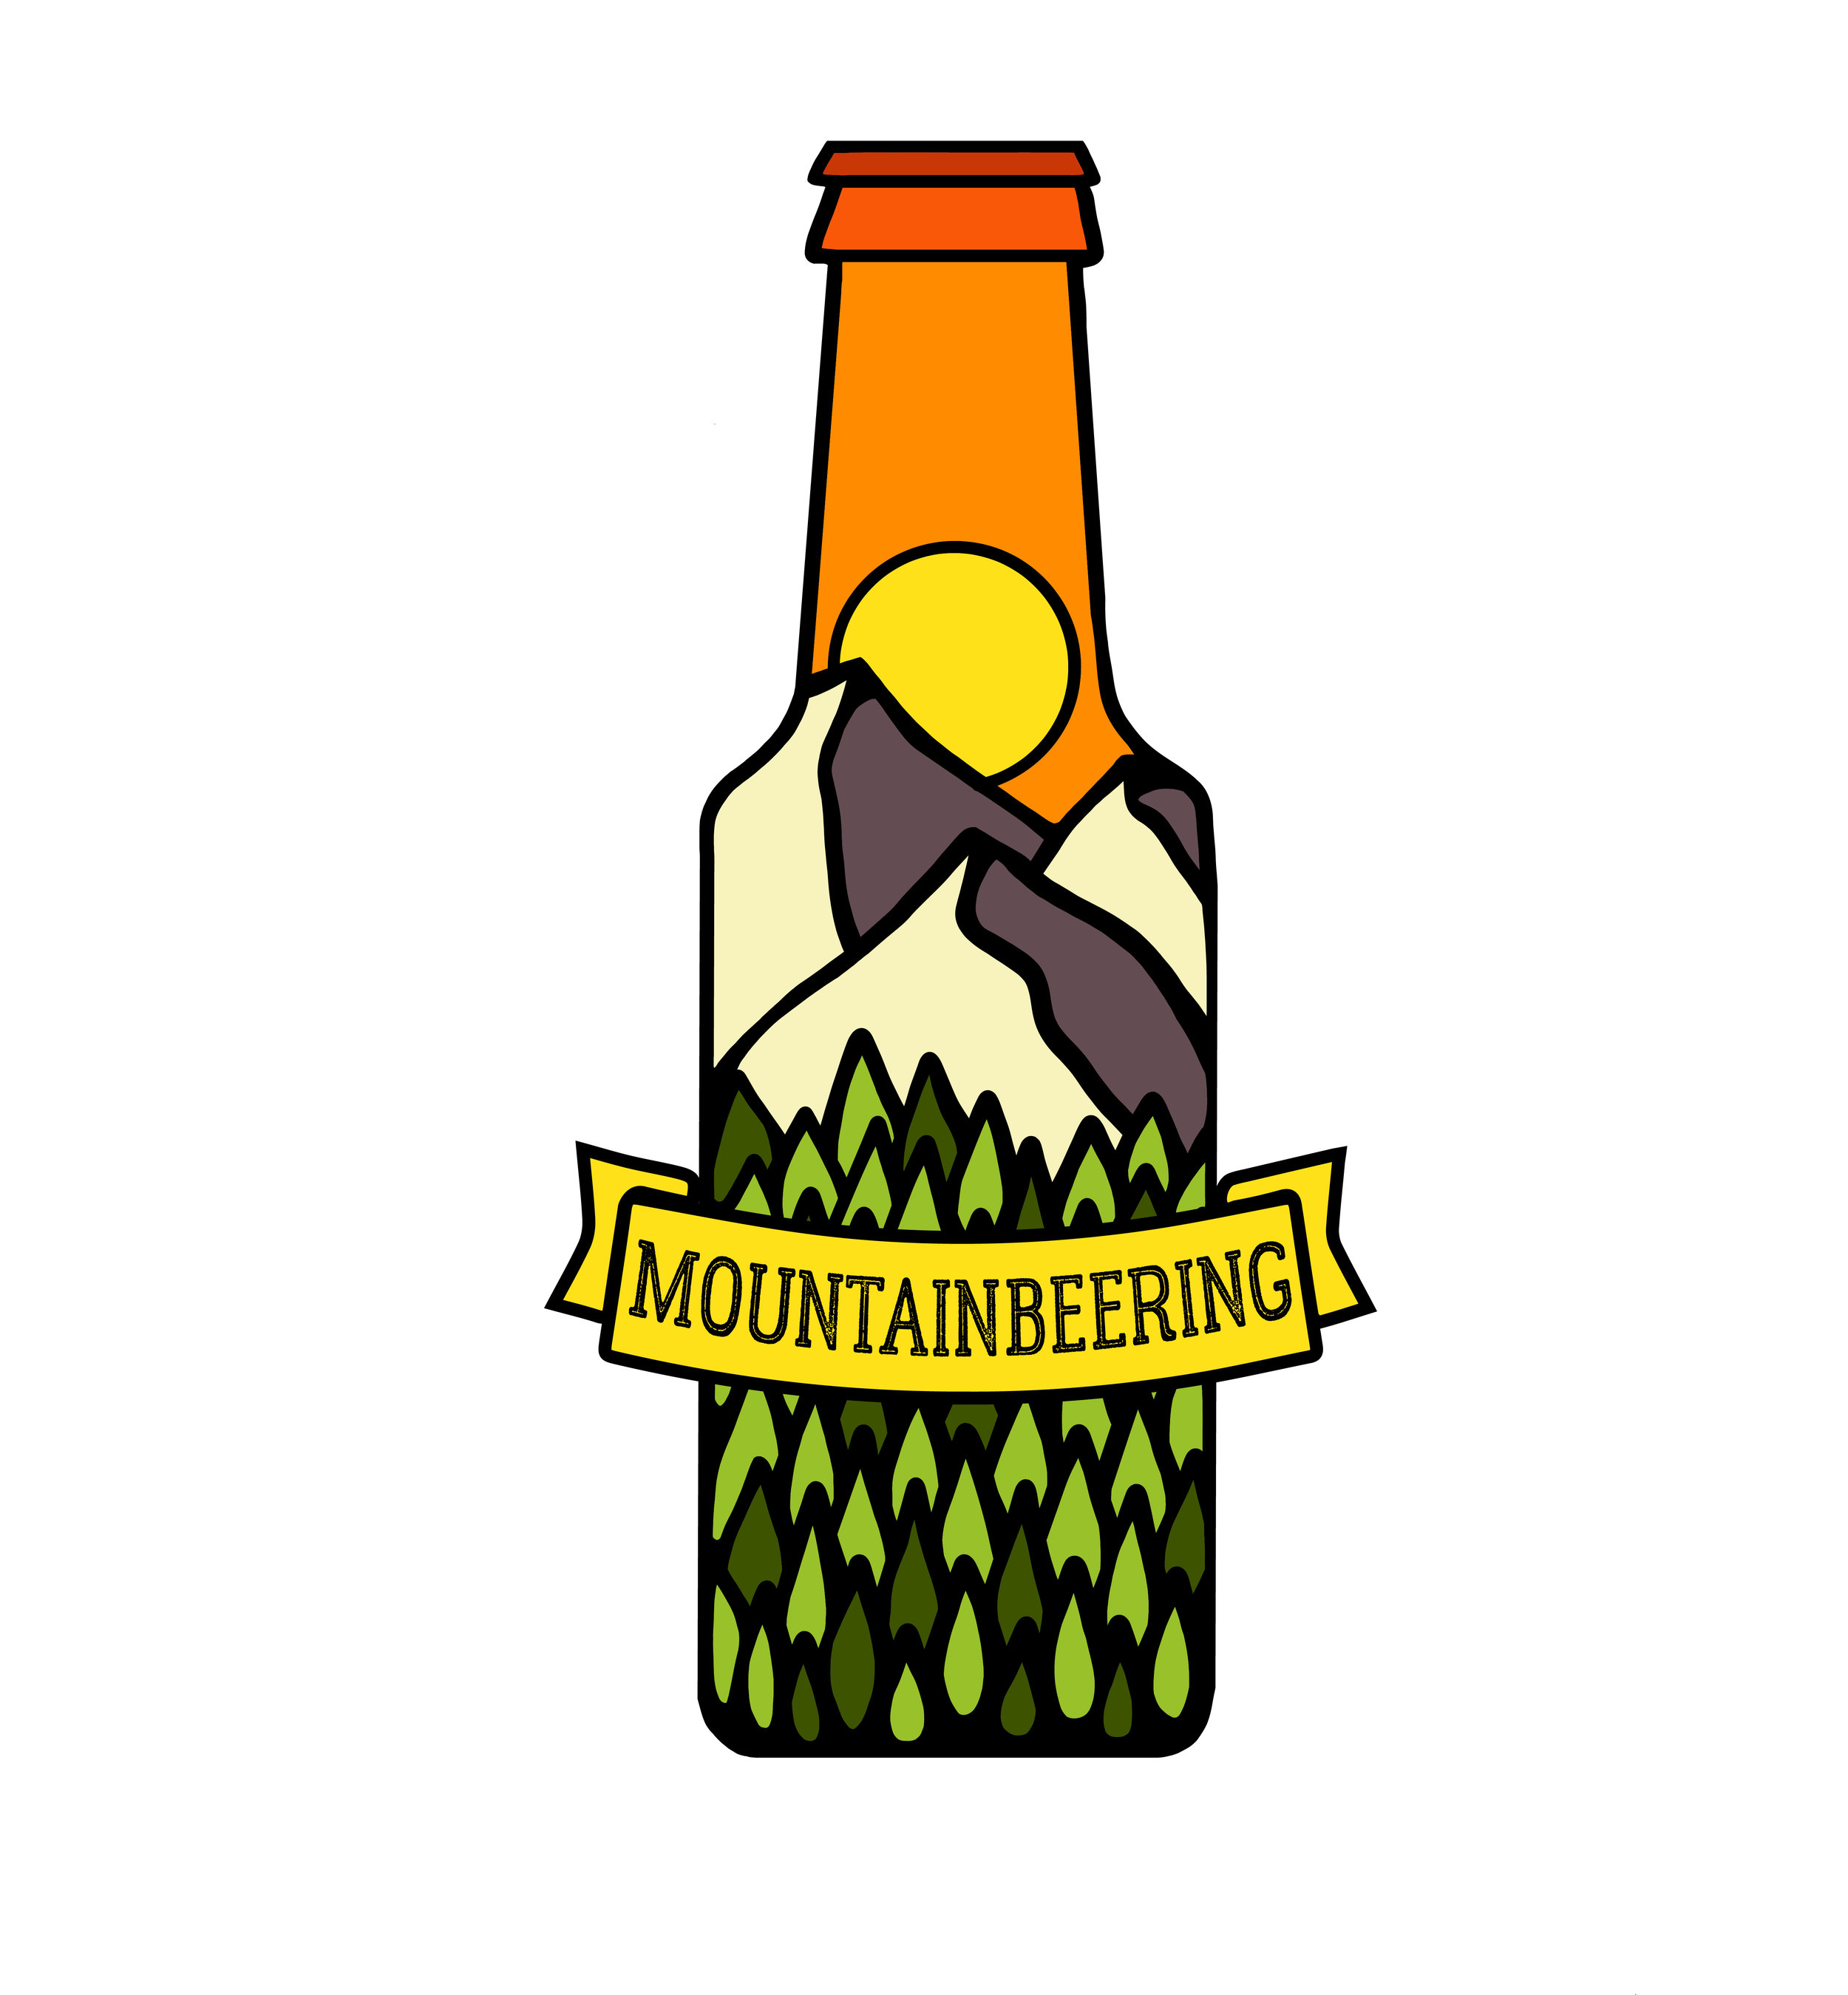 MOUNTAIN-BEERING -